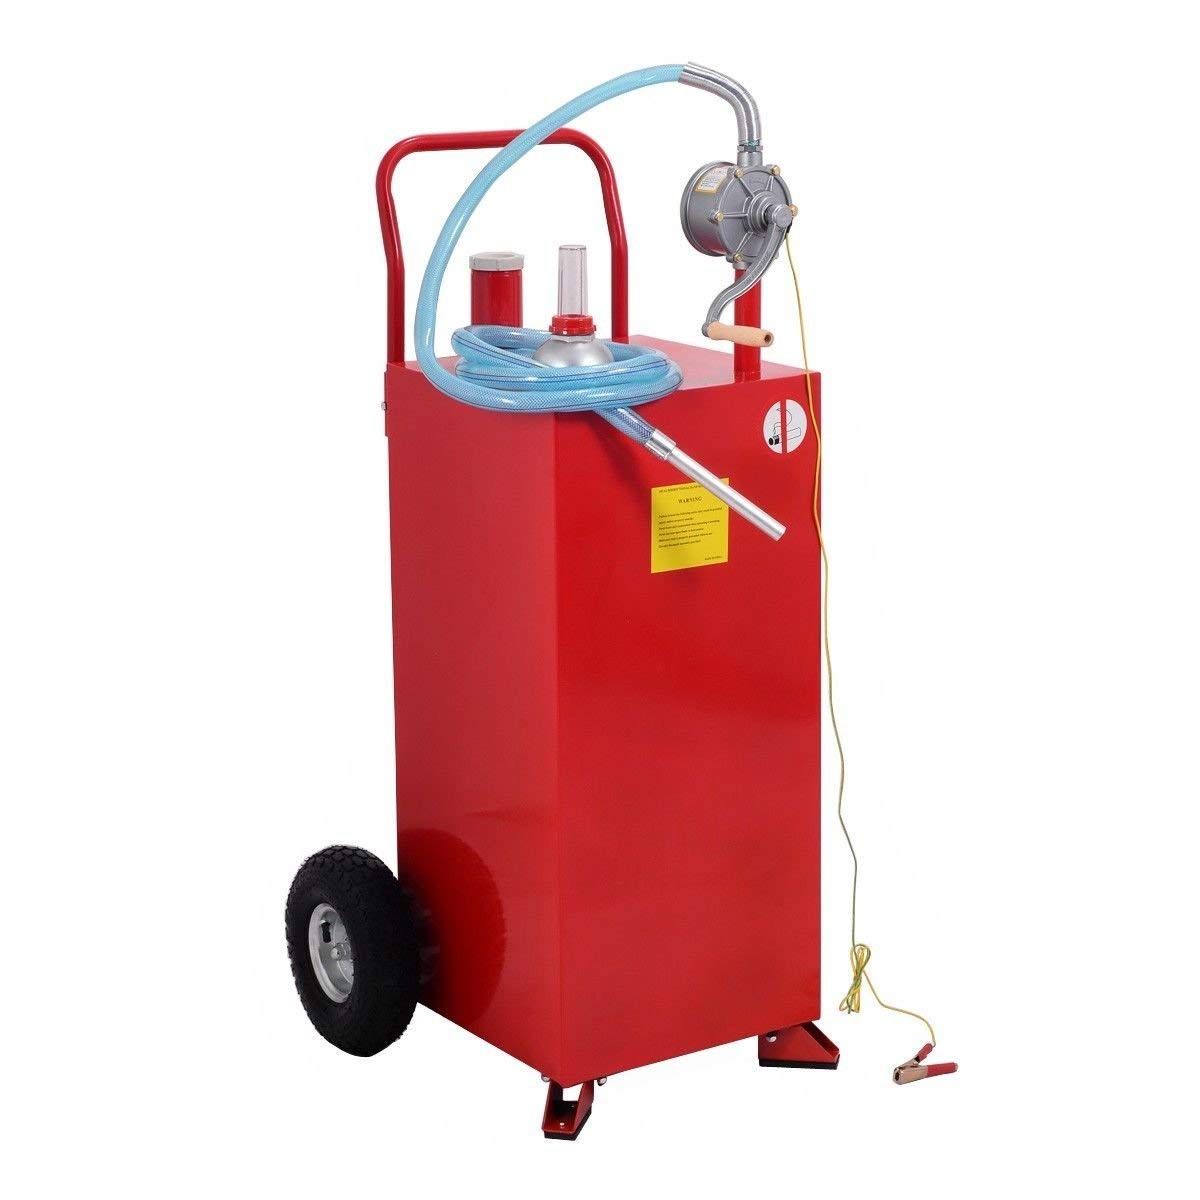 Goplus 30 Gallon Gas Caddy, Fuel Diesel Storage Tank, Rugged Durable Material, Anti-Static Ground Clamp, Labor-Saving Hand Operated Defueling Pump, 8 Feet Discharge Hose Red Caddy (Red) by Goplus (Image #5)